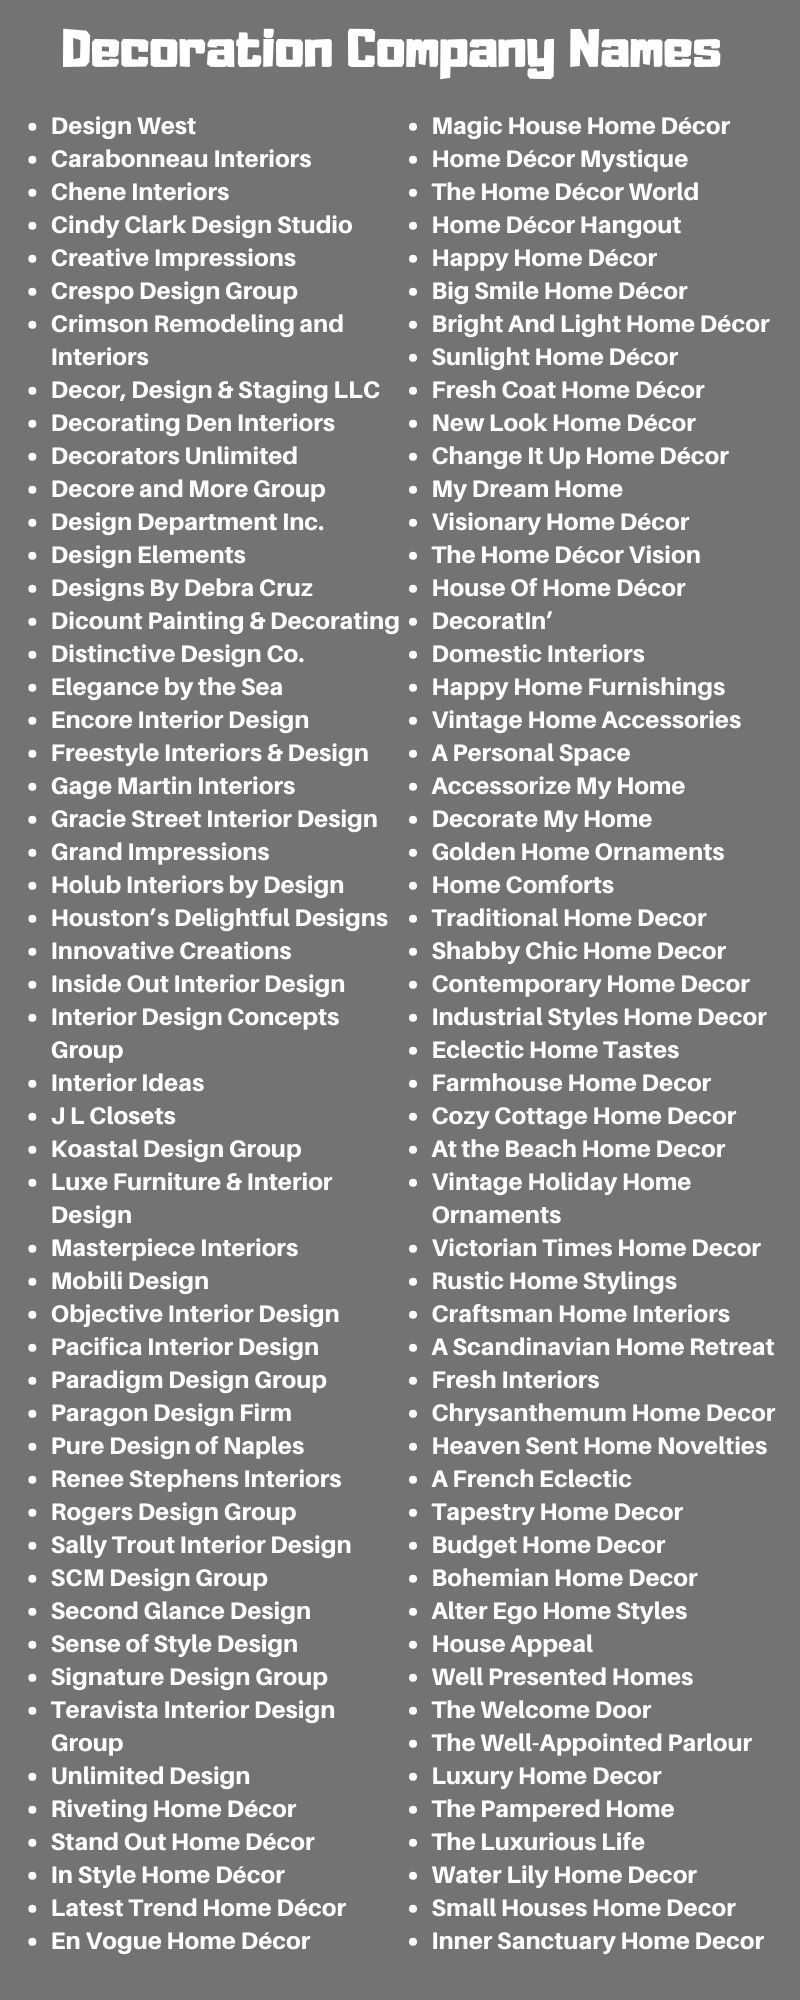 Decoration Company Names 200 Business Names For Home Decor